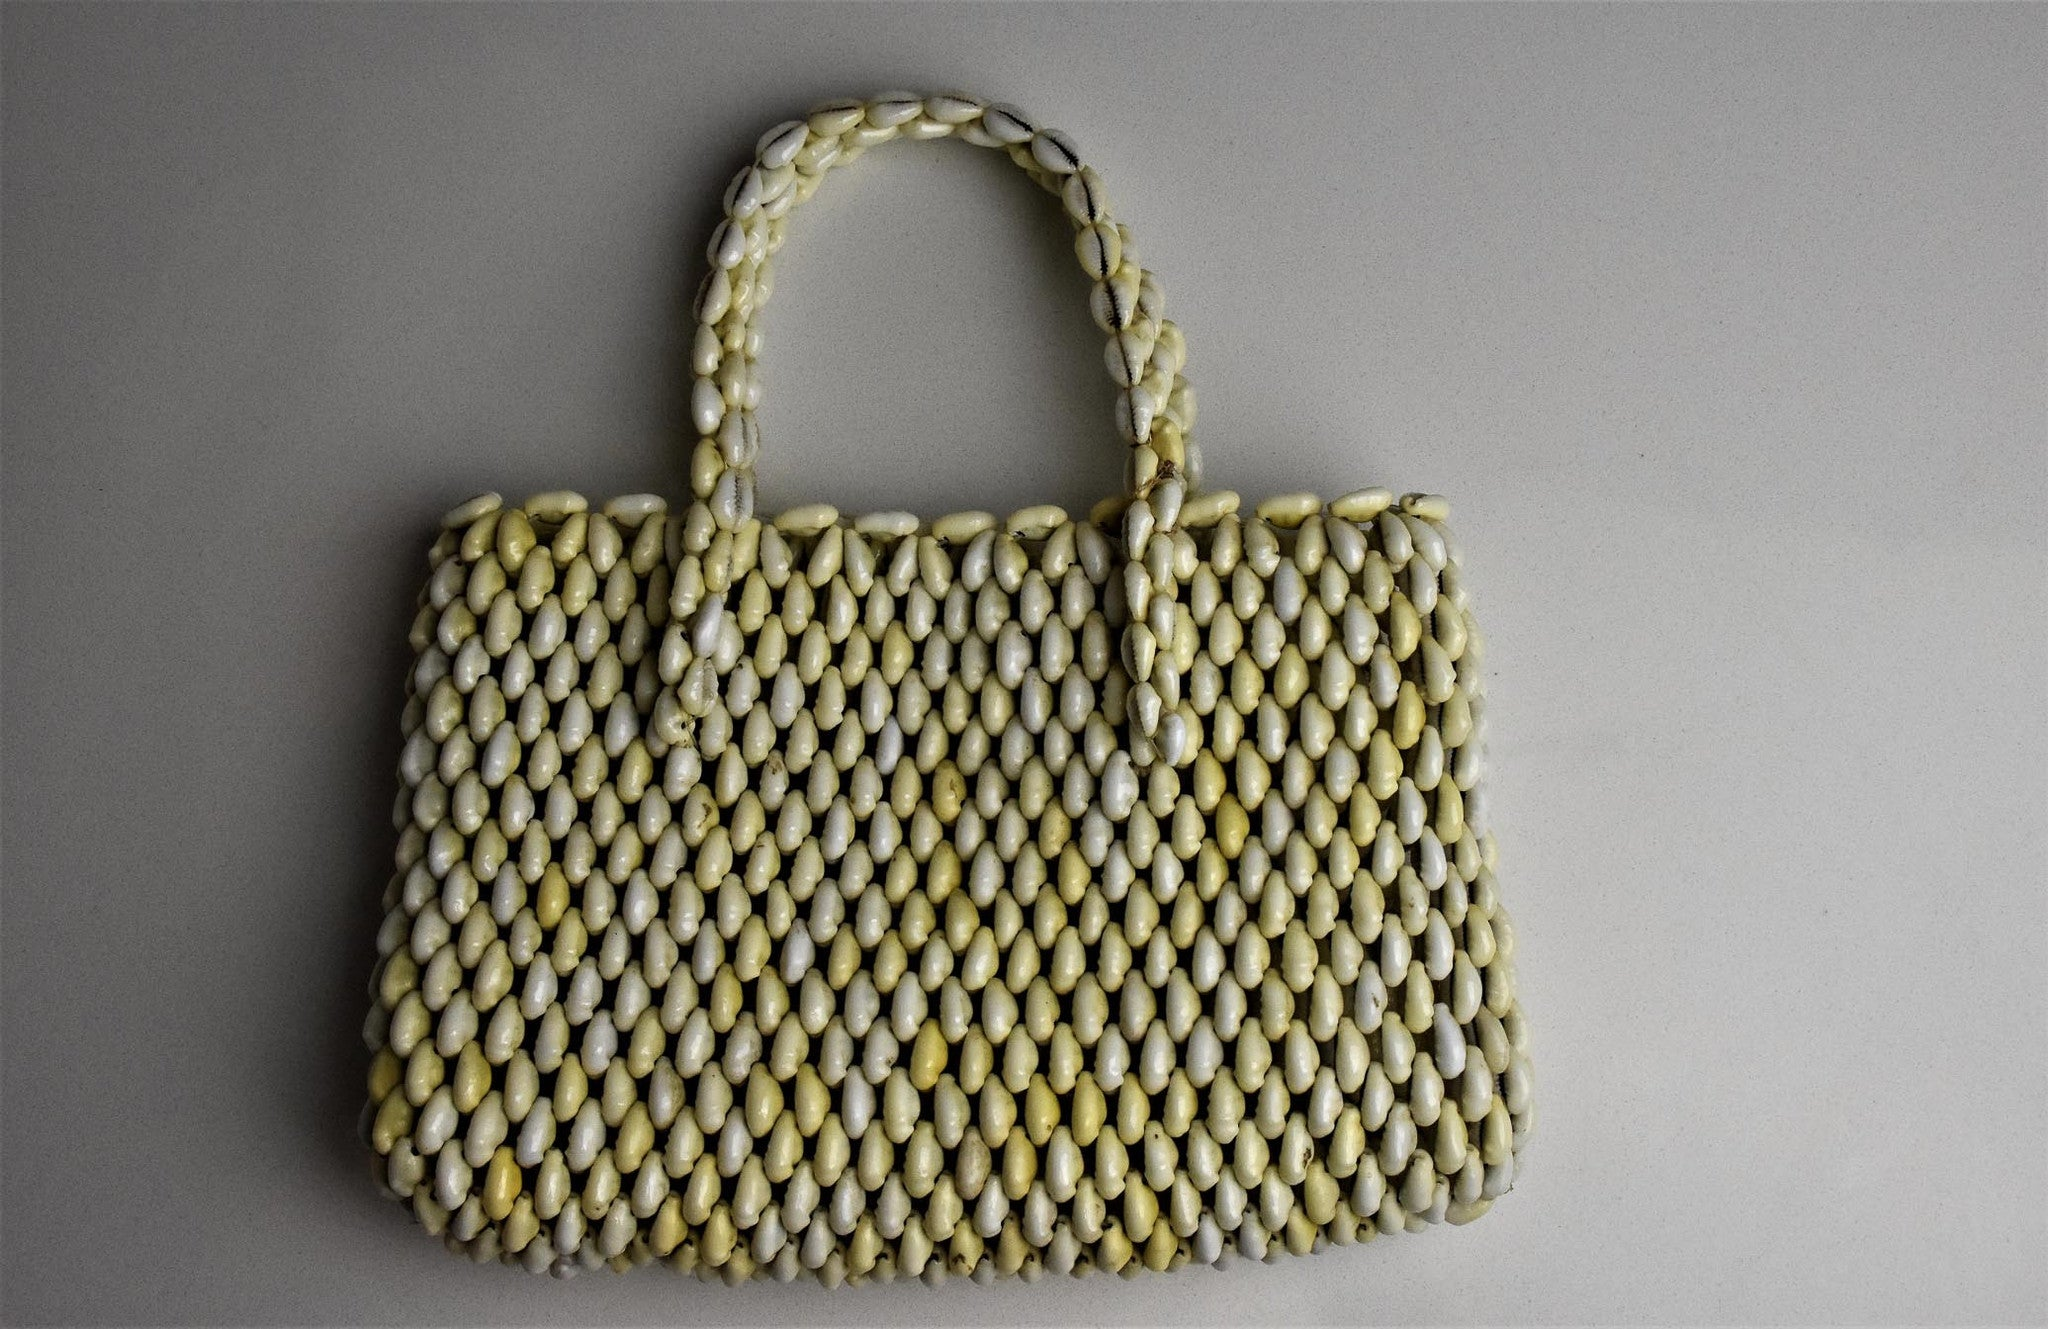 1960's cowrie shell bag